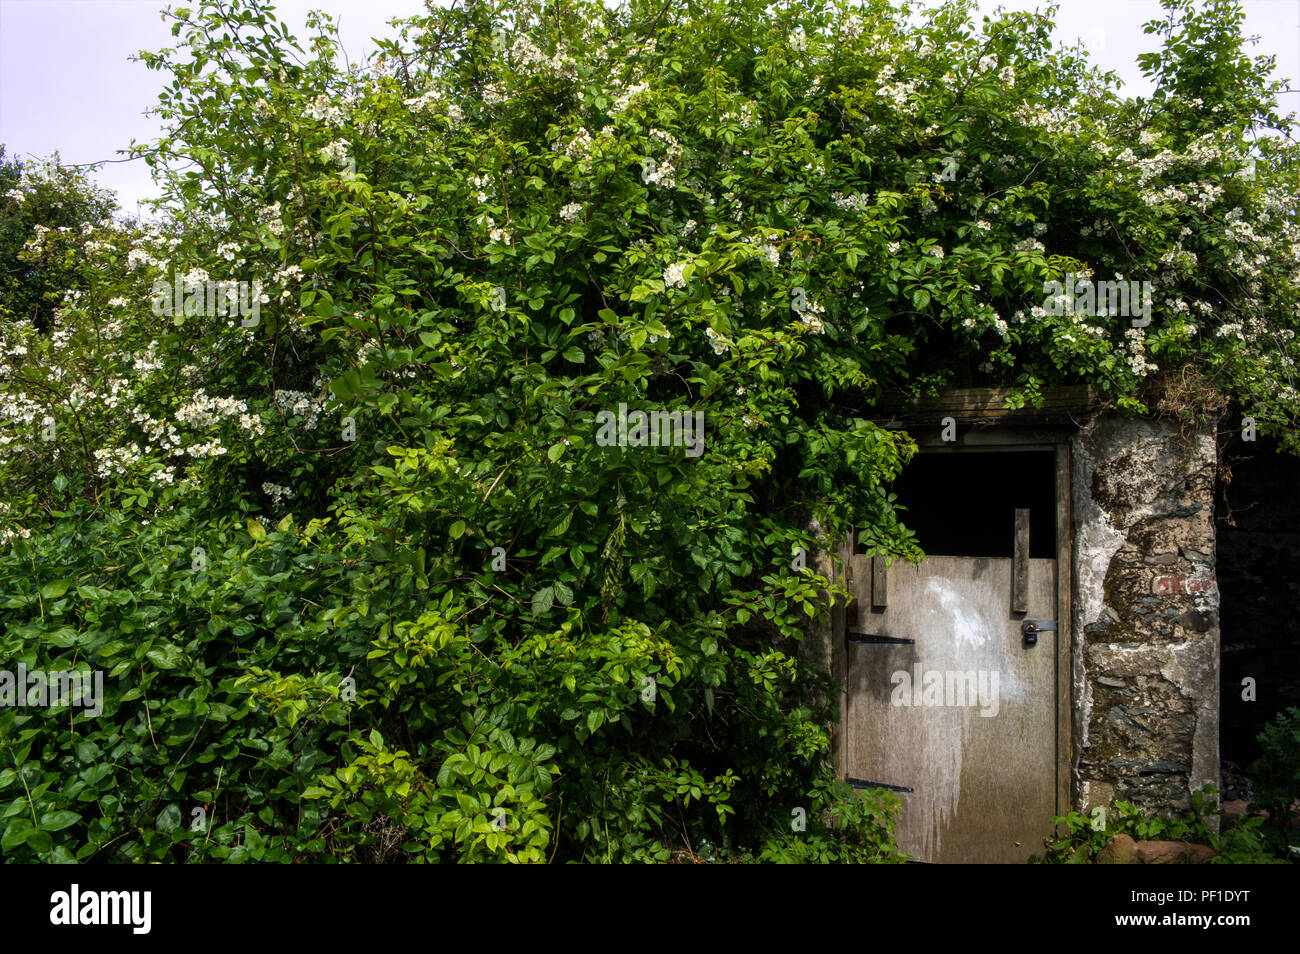 A rose bush growing over a stone shed - Stock Image